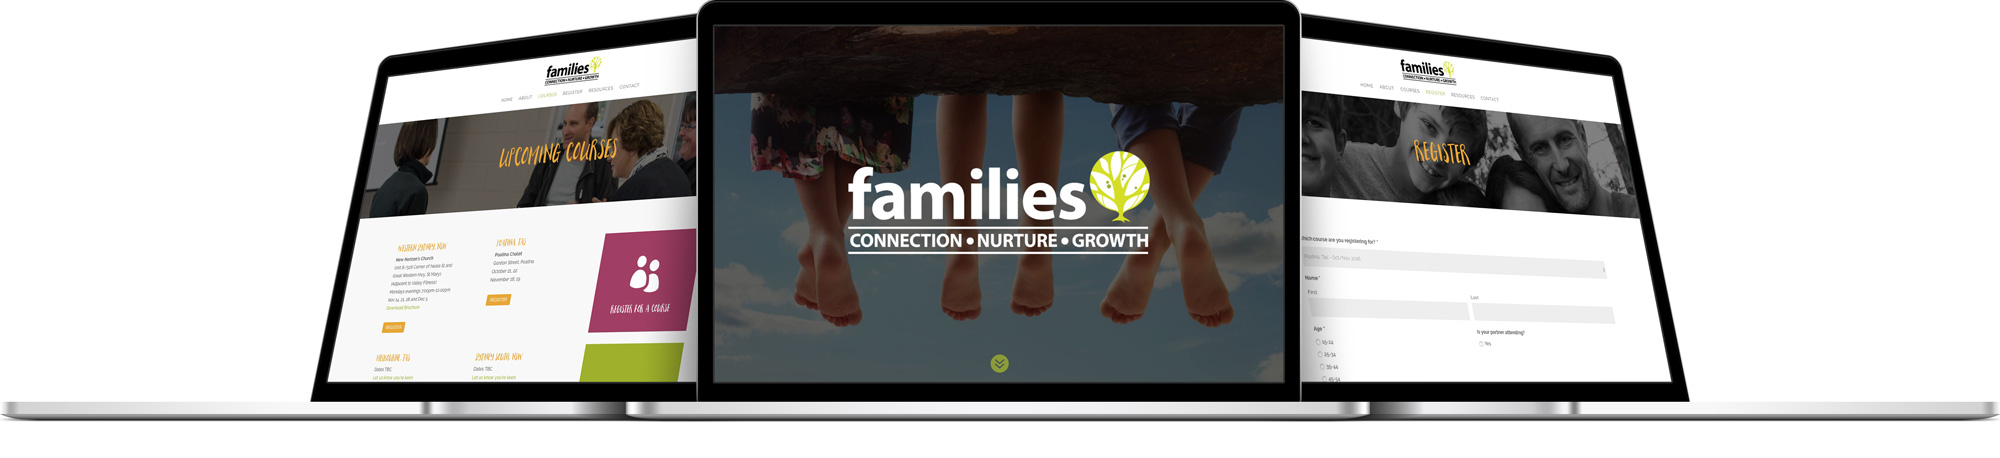 Families Website